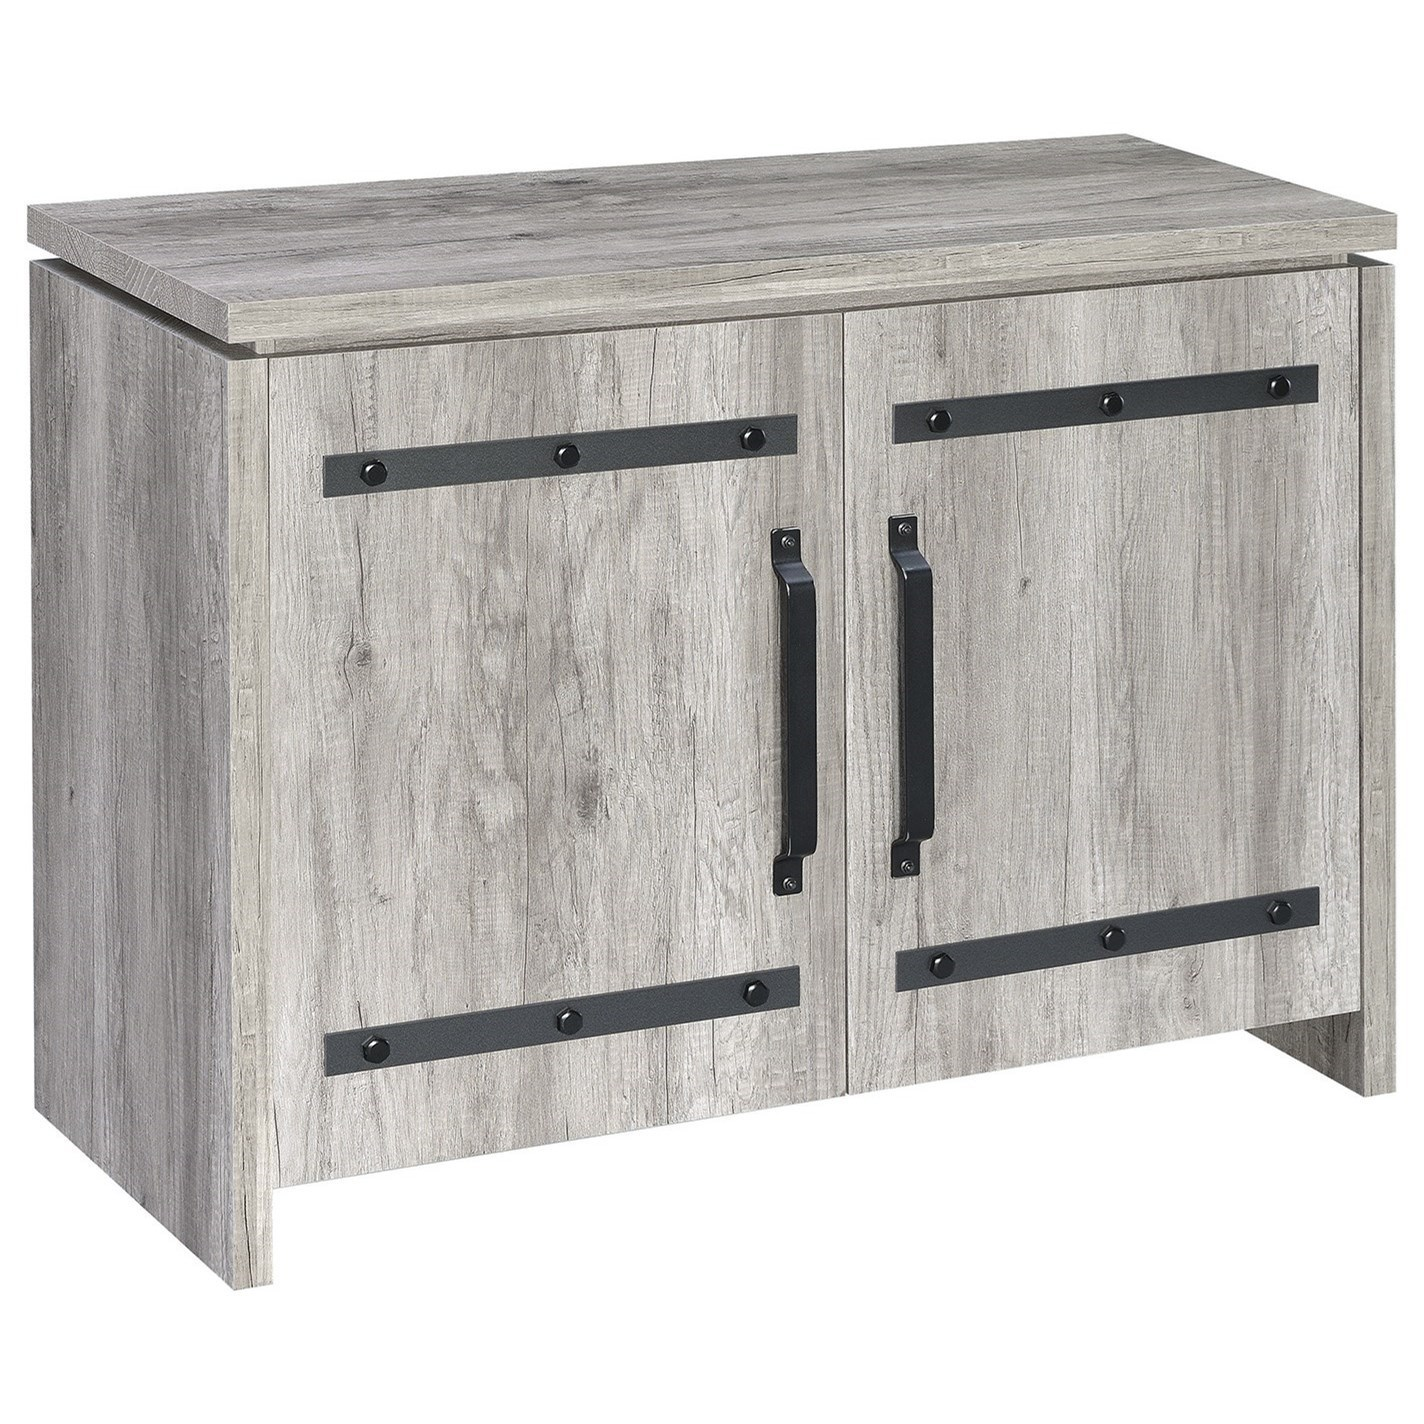 Accent Cabinets Rustic Grey Accent Cabinet By Coaster